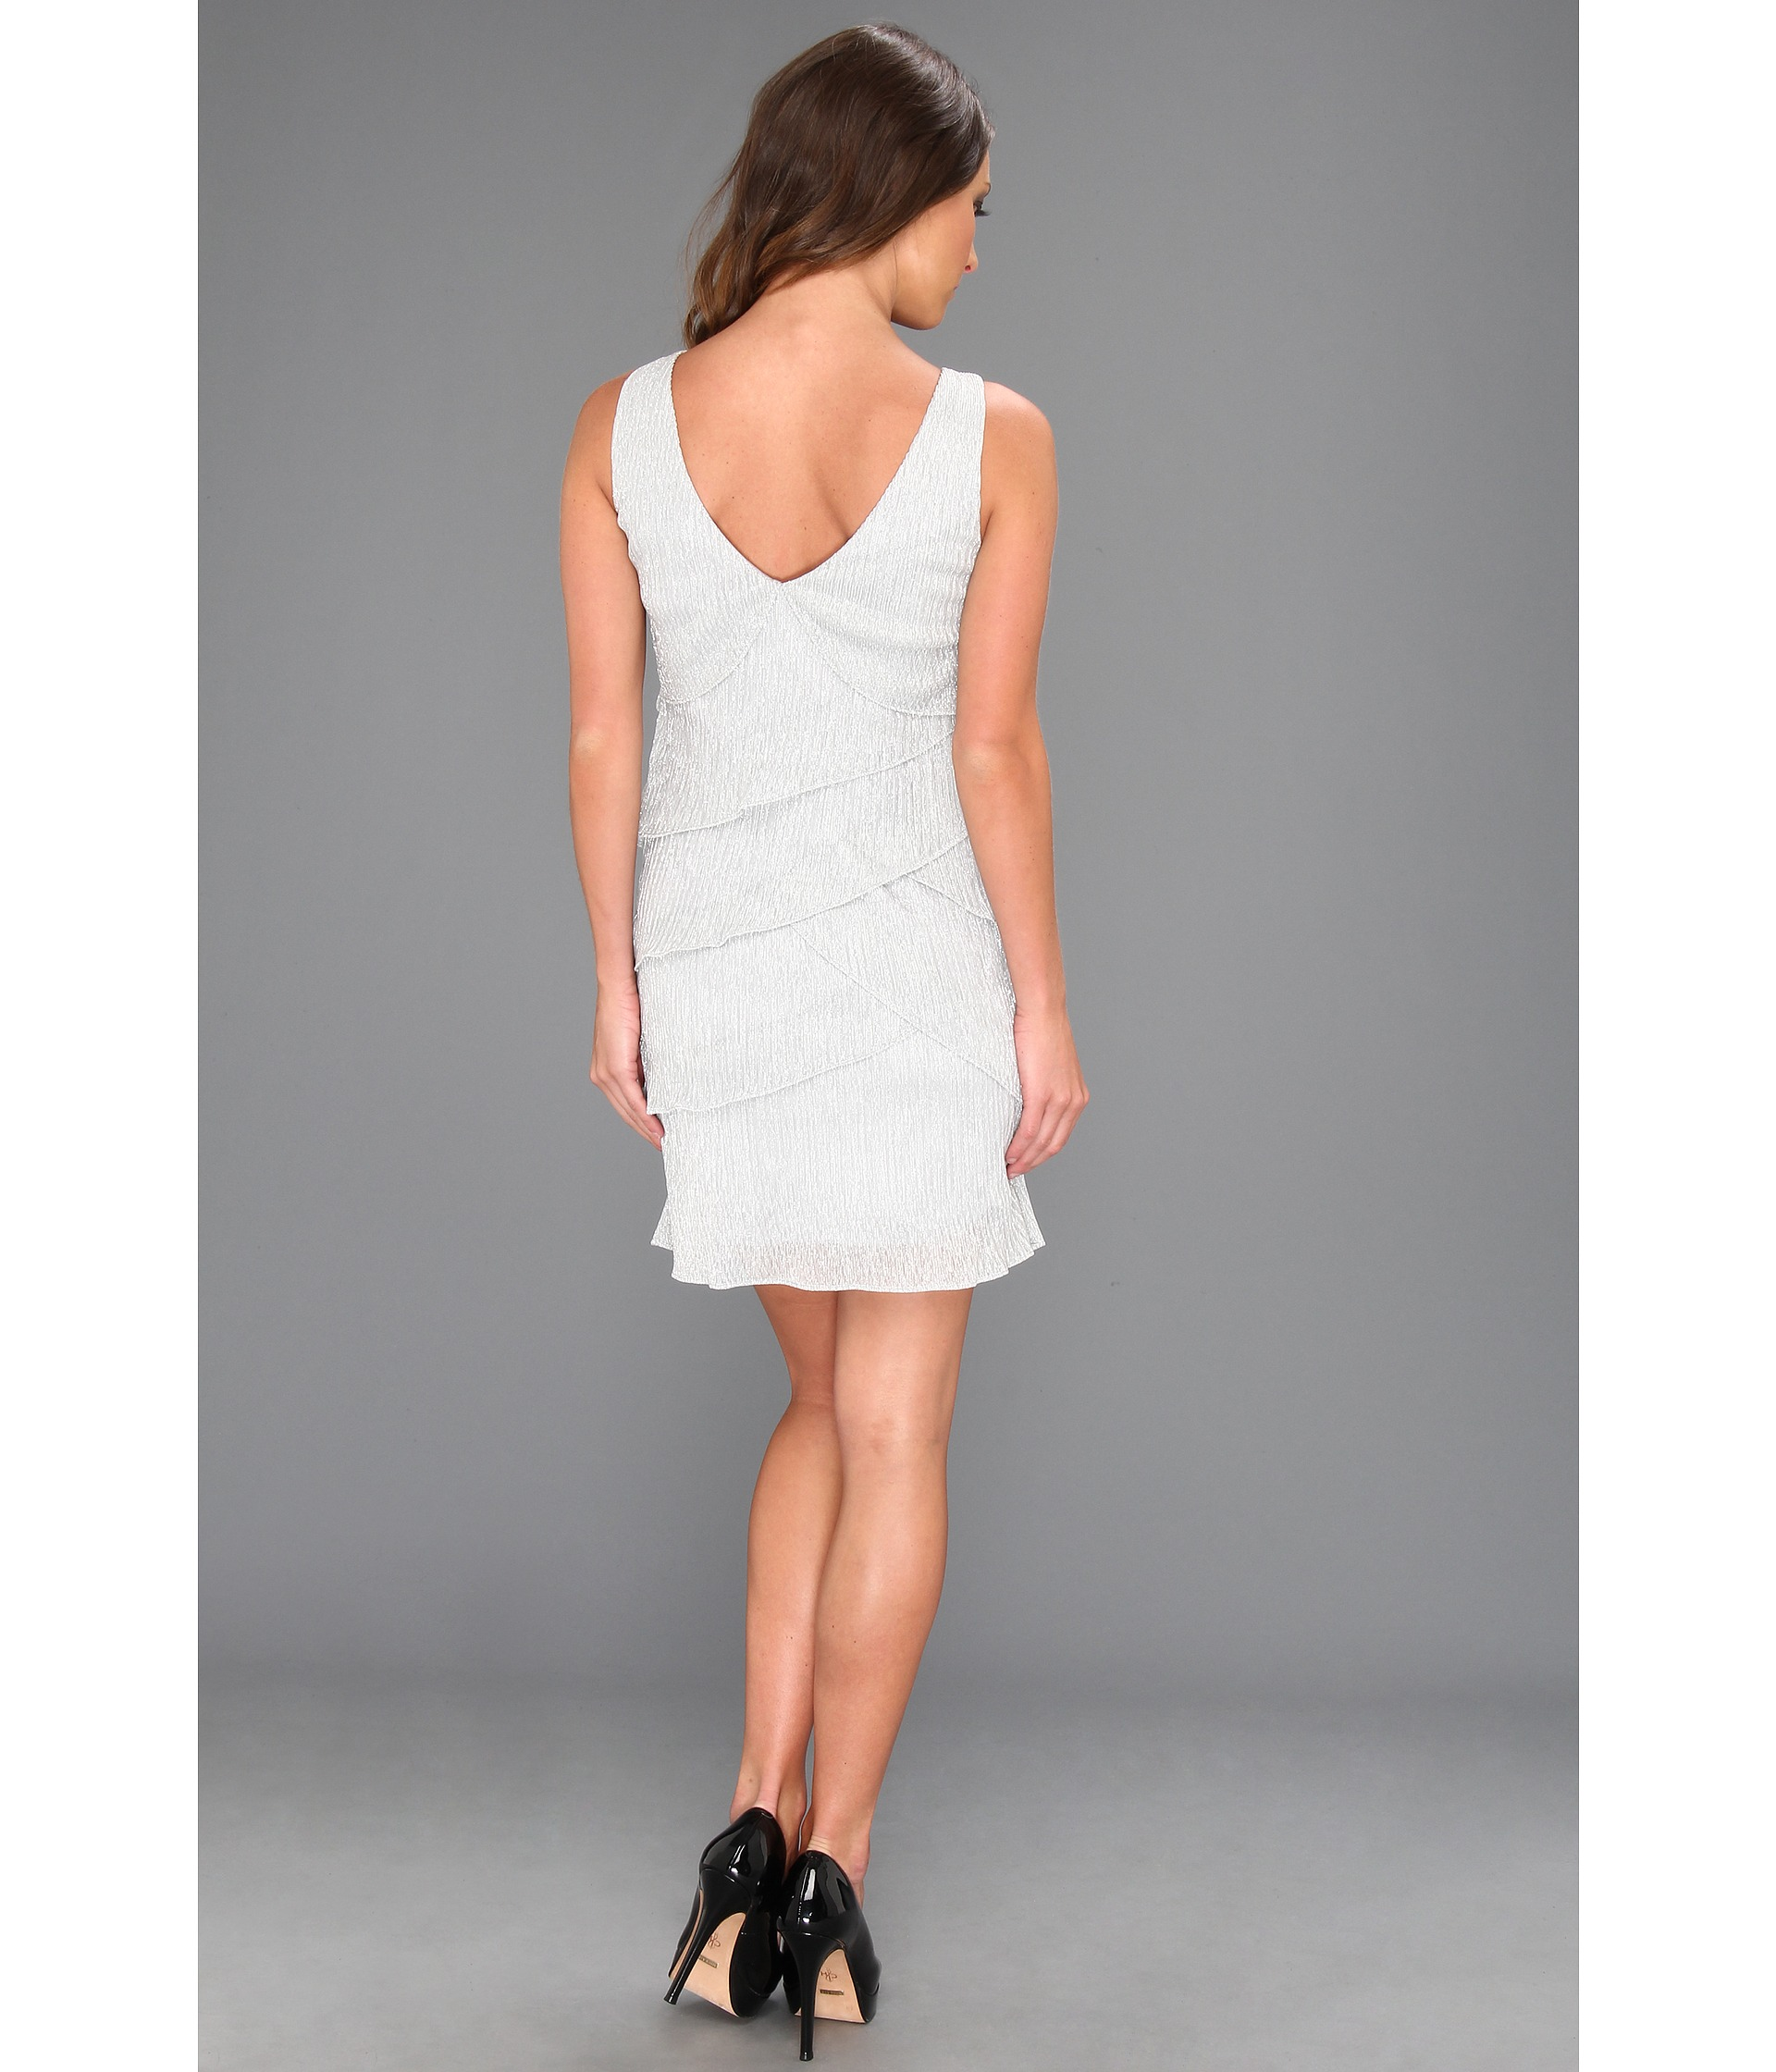 Laundry by Shelli Segal Sleeveless Tiered Dress